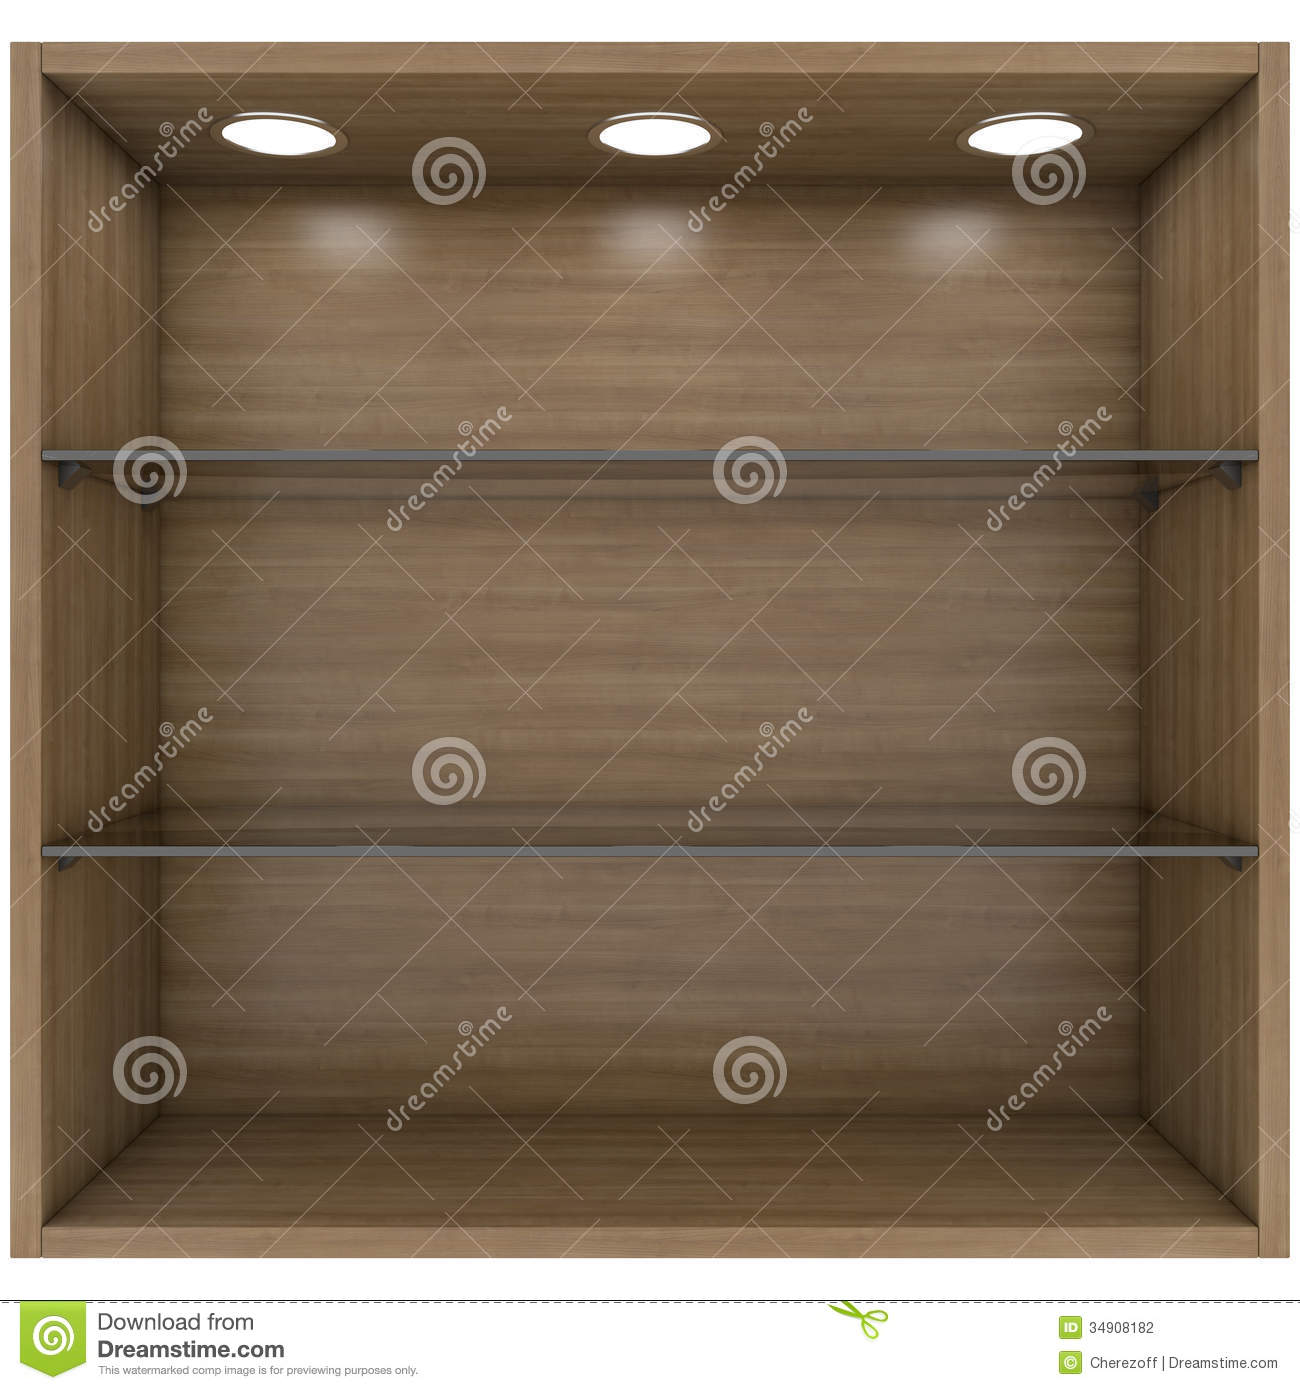 Wooden And Glass Shelves With Built-in Lights Stock Photography ...